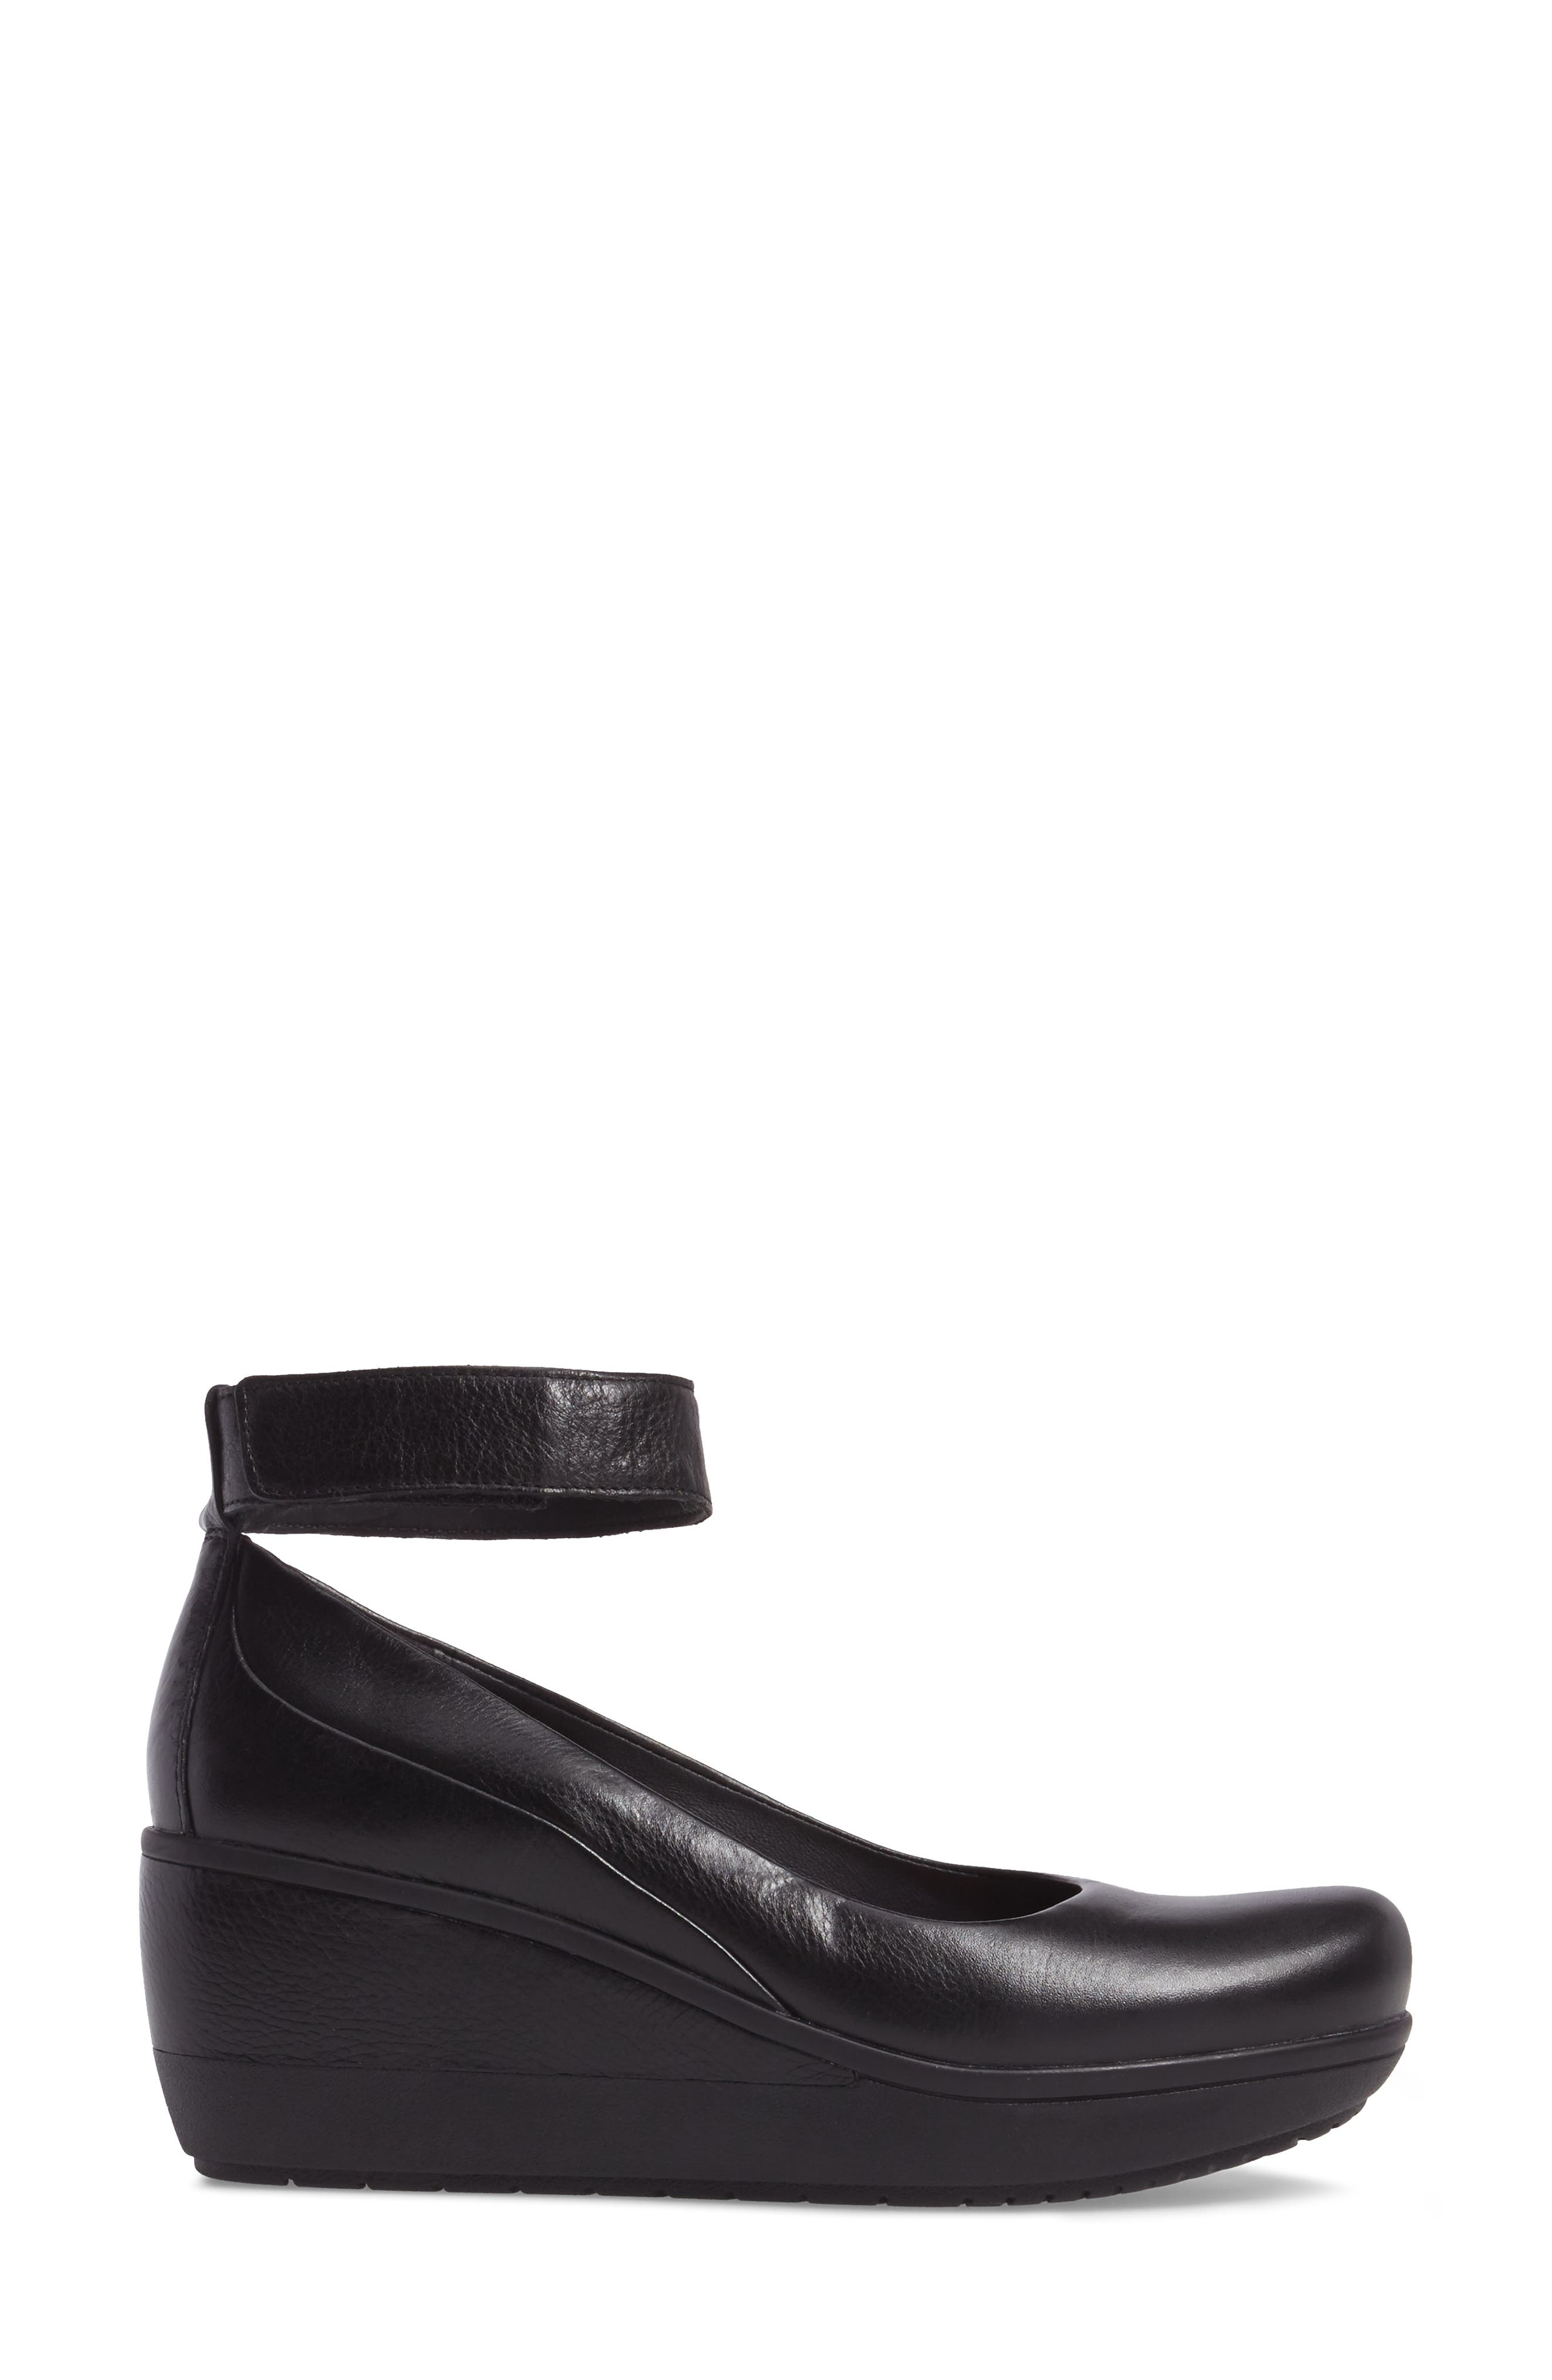 Wynnmere Fox Ankle Strap Pump,                             Alternate thumbnail 3, color,                             BLACK LEATHER